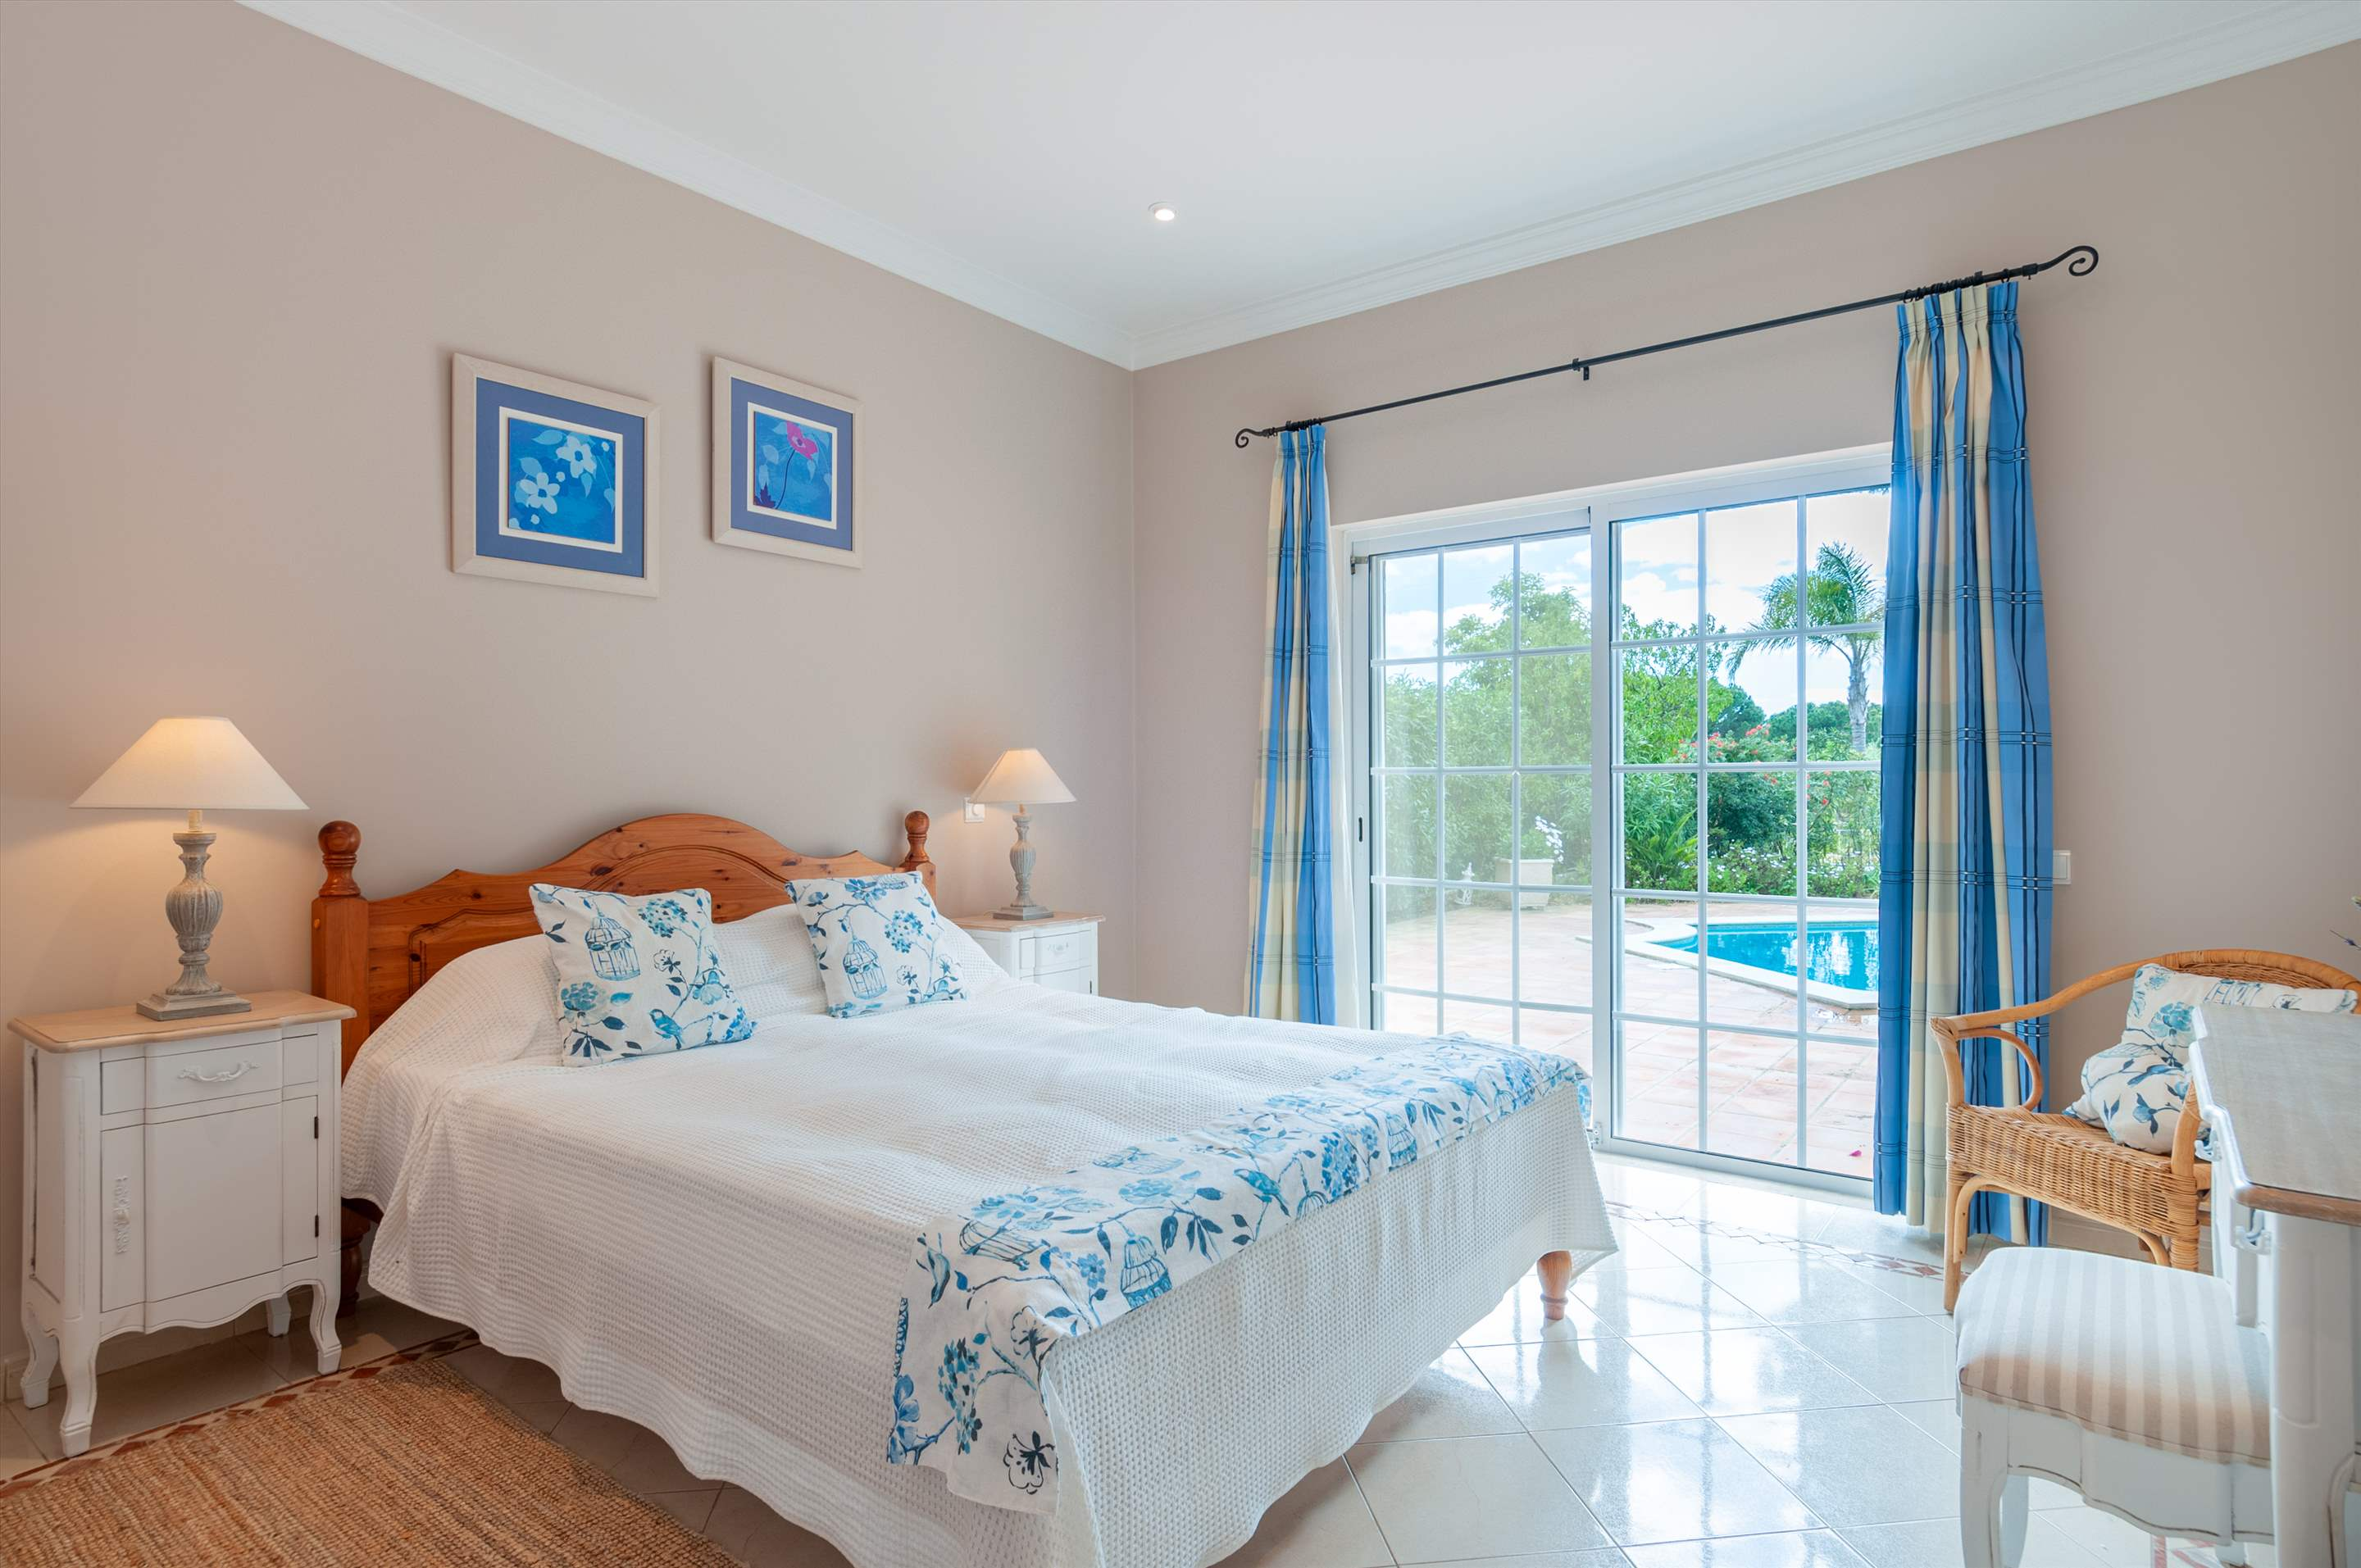 Casa dos Golfinhos, 4 bedroom villa in Vale do Lobo, Algarve Photo #17